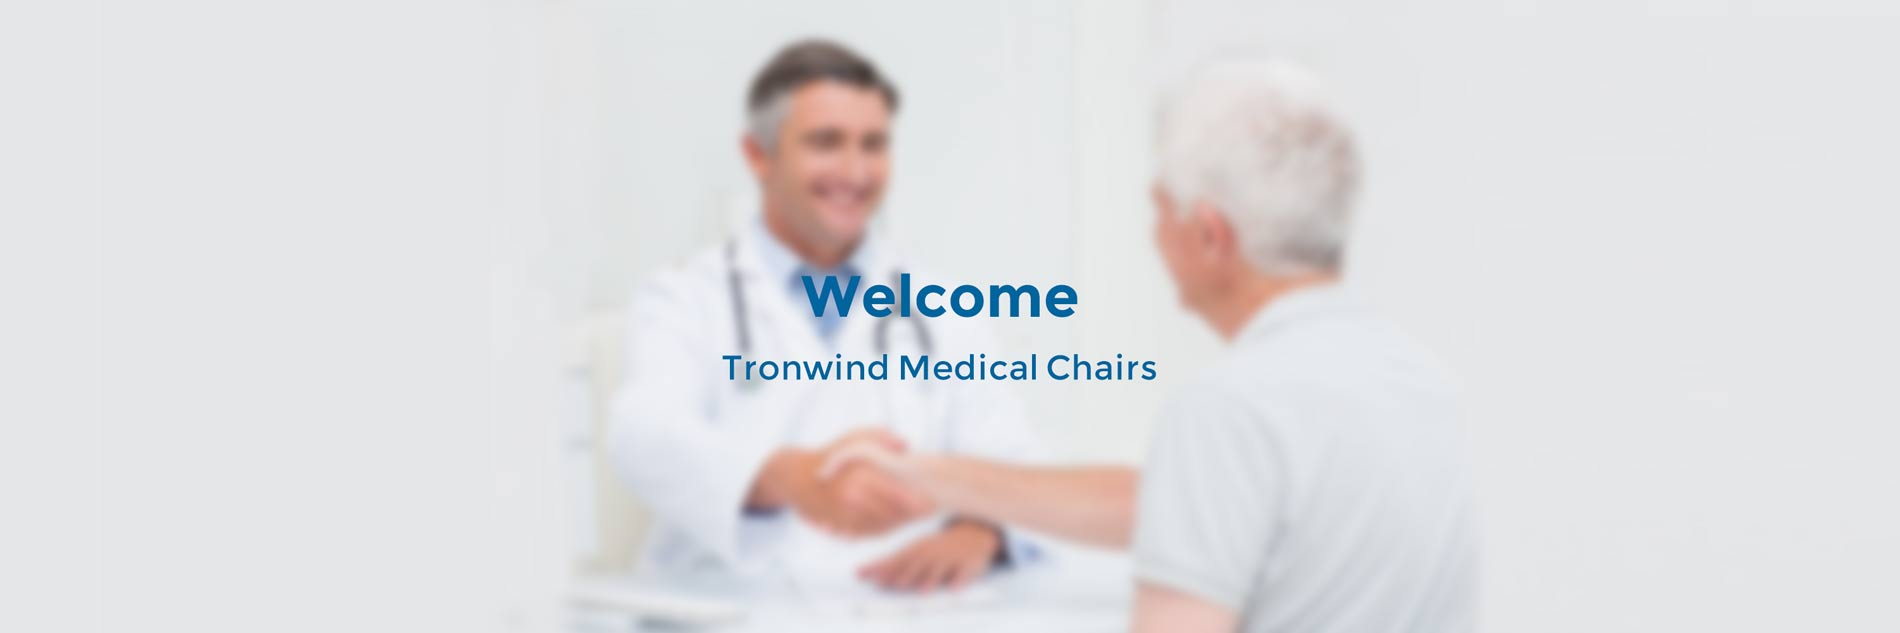 welcome to Tronwind Medical Chairs